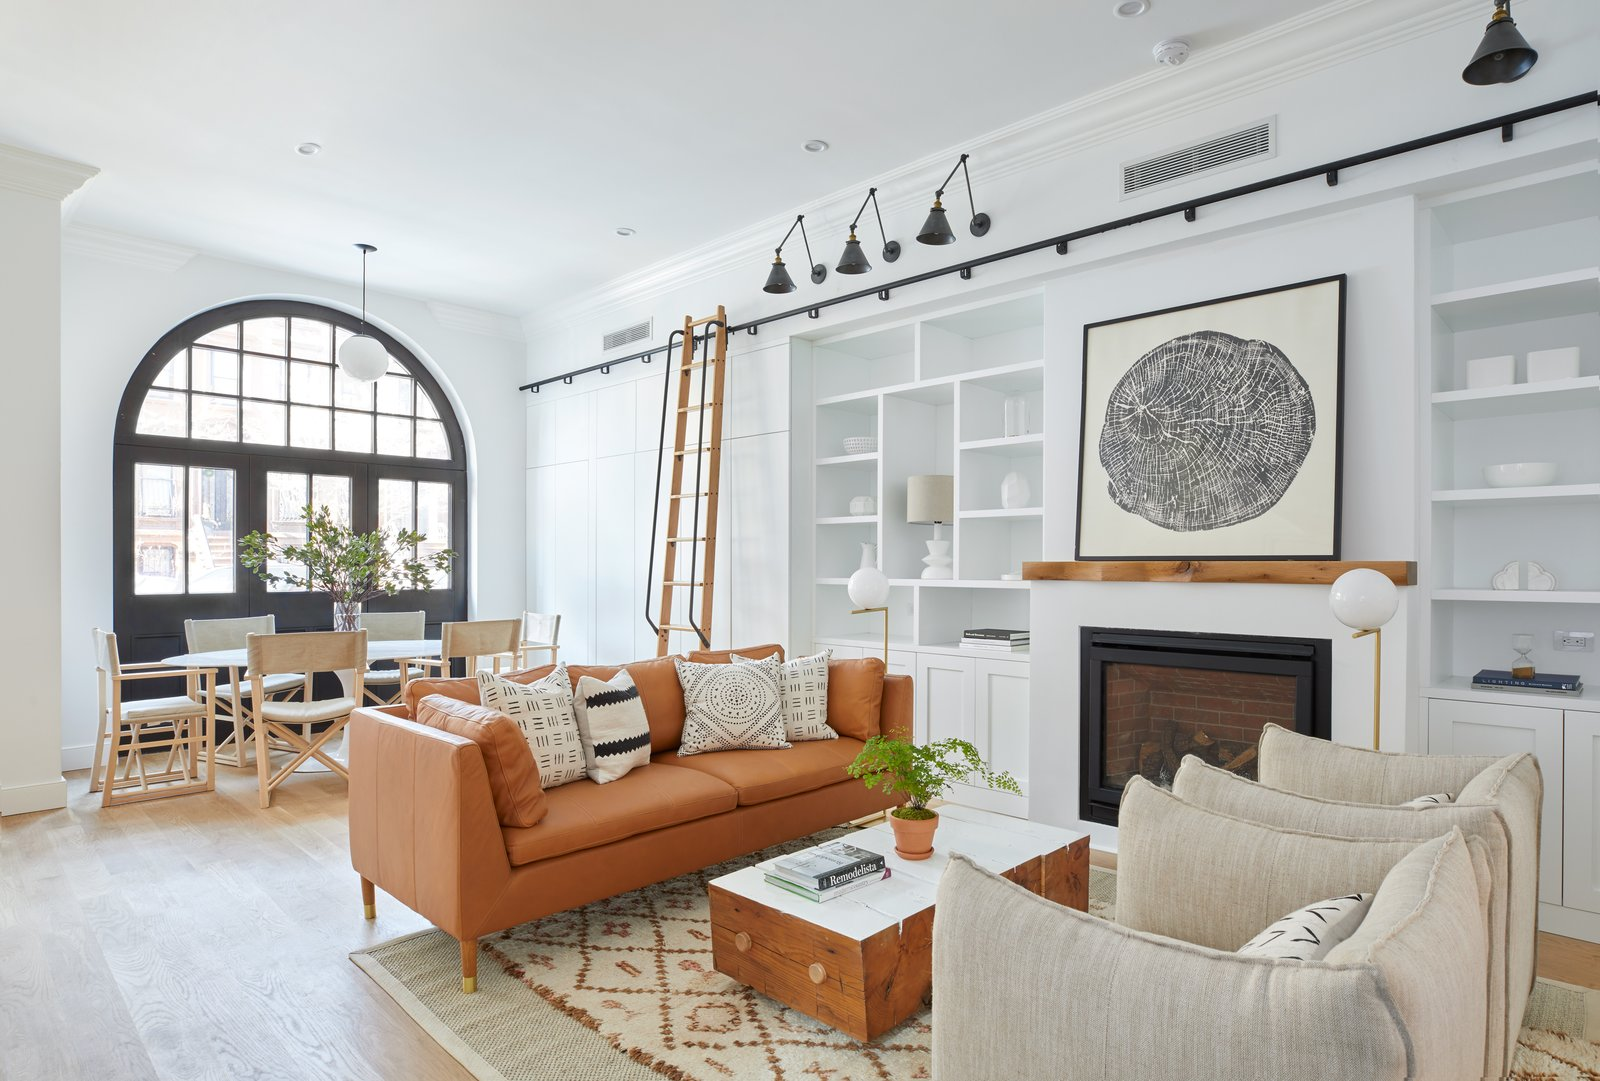 Photo 7 of 14 in Two Renovated Carriage Houses in Brooklyn Hit the ...